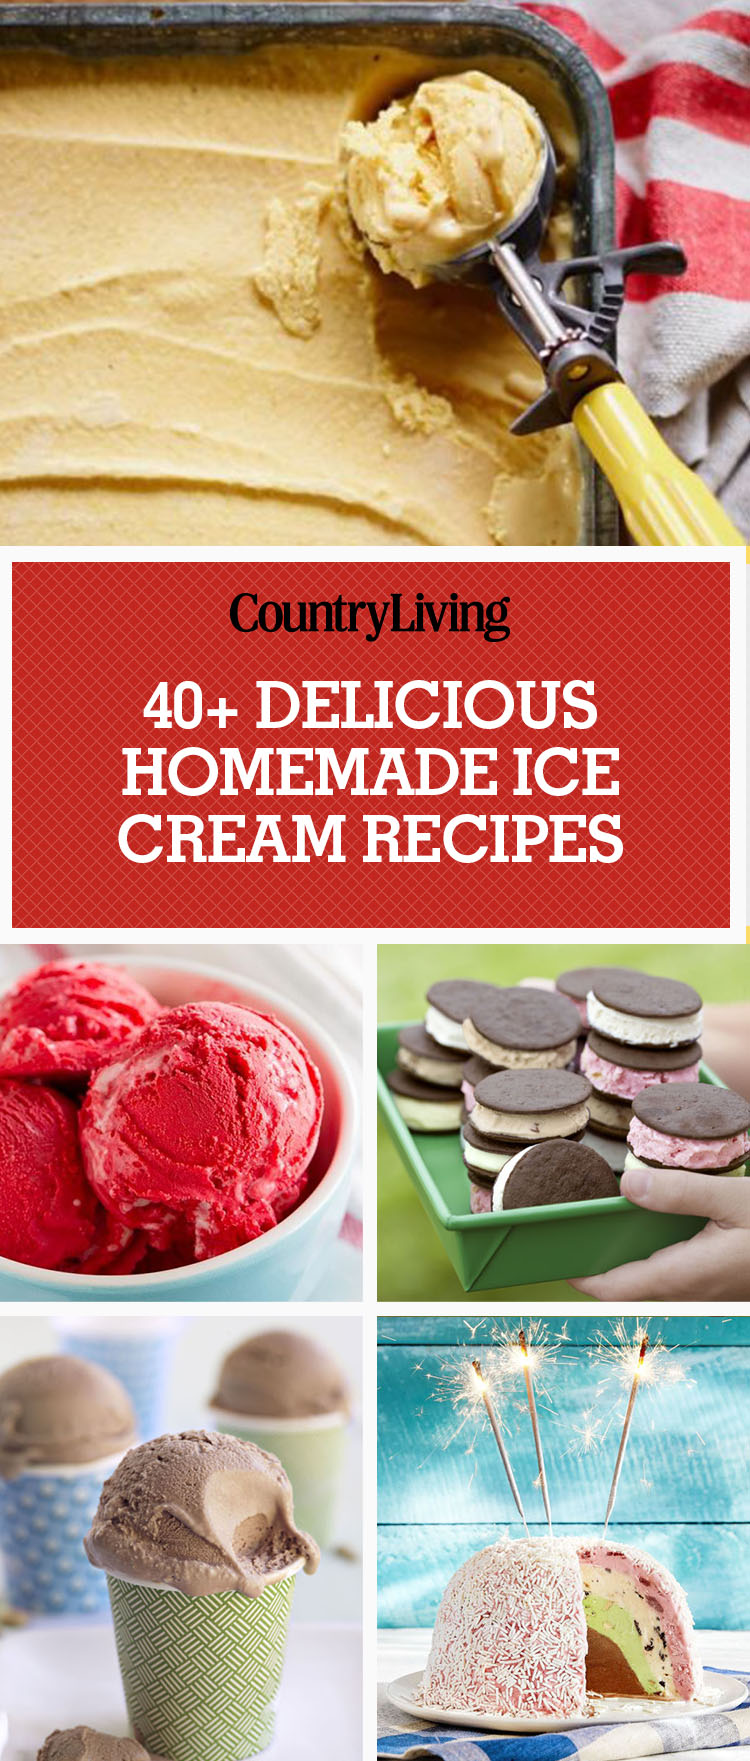 42 Easy Homemade Ice Cream Recipes How To Make Ice Cream